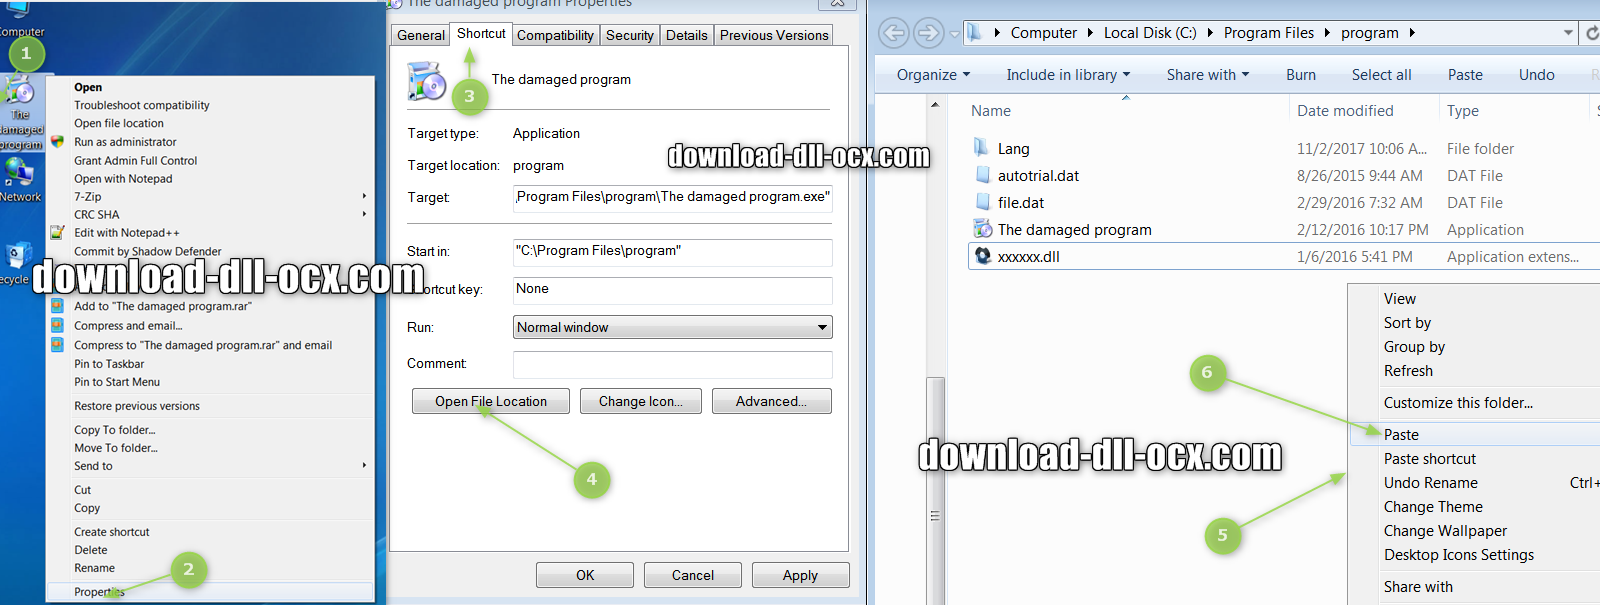 how to install wmvadvd.dll file? for fix missing